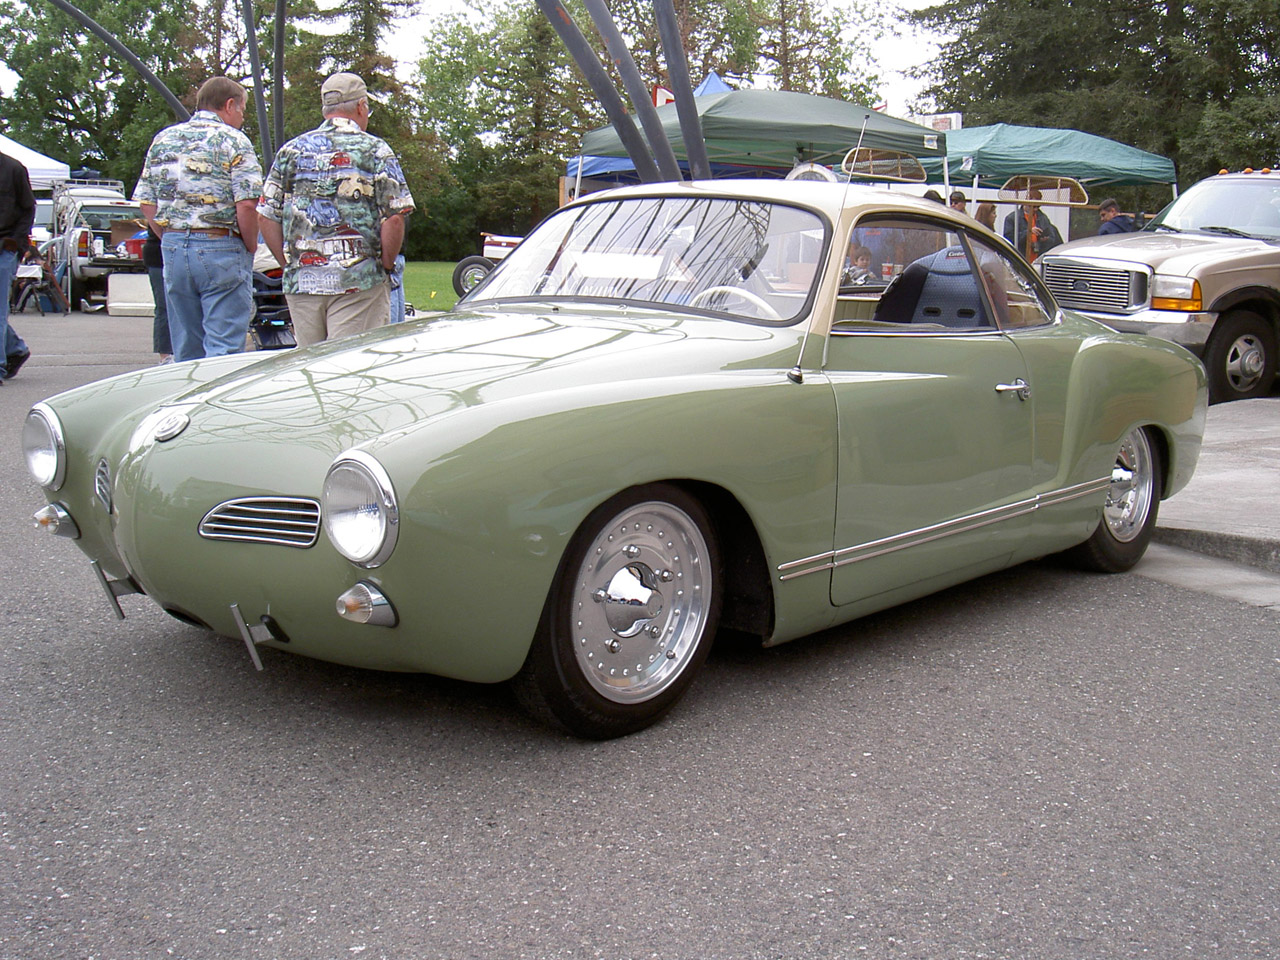 volkswagen karmann ghia picture 54201 volkswagen photo gallery. Black Bedroom Furniture Sets. Home Design Ideas